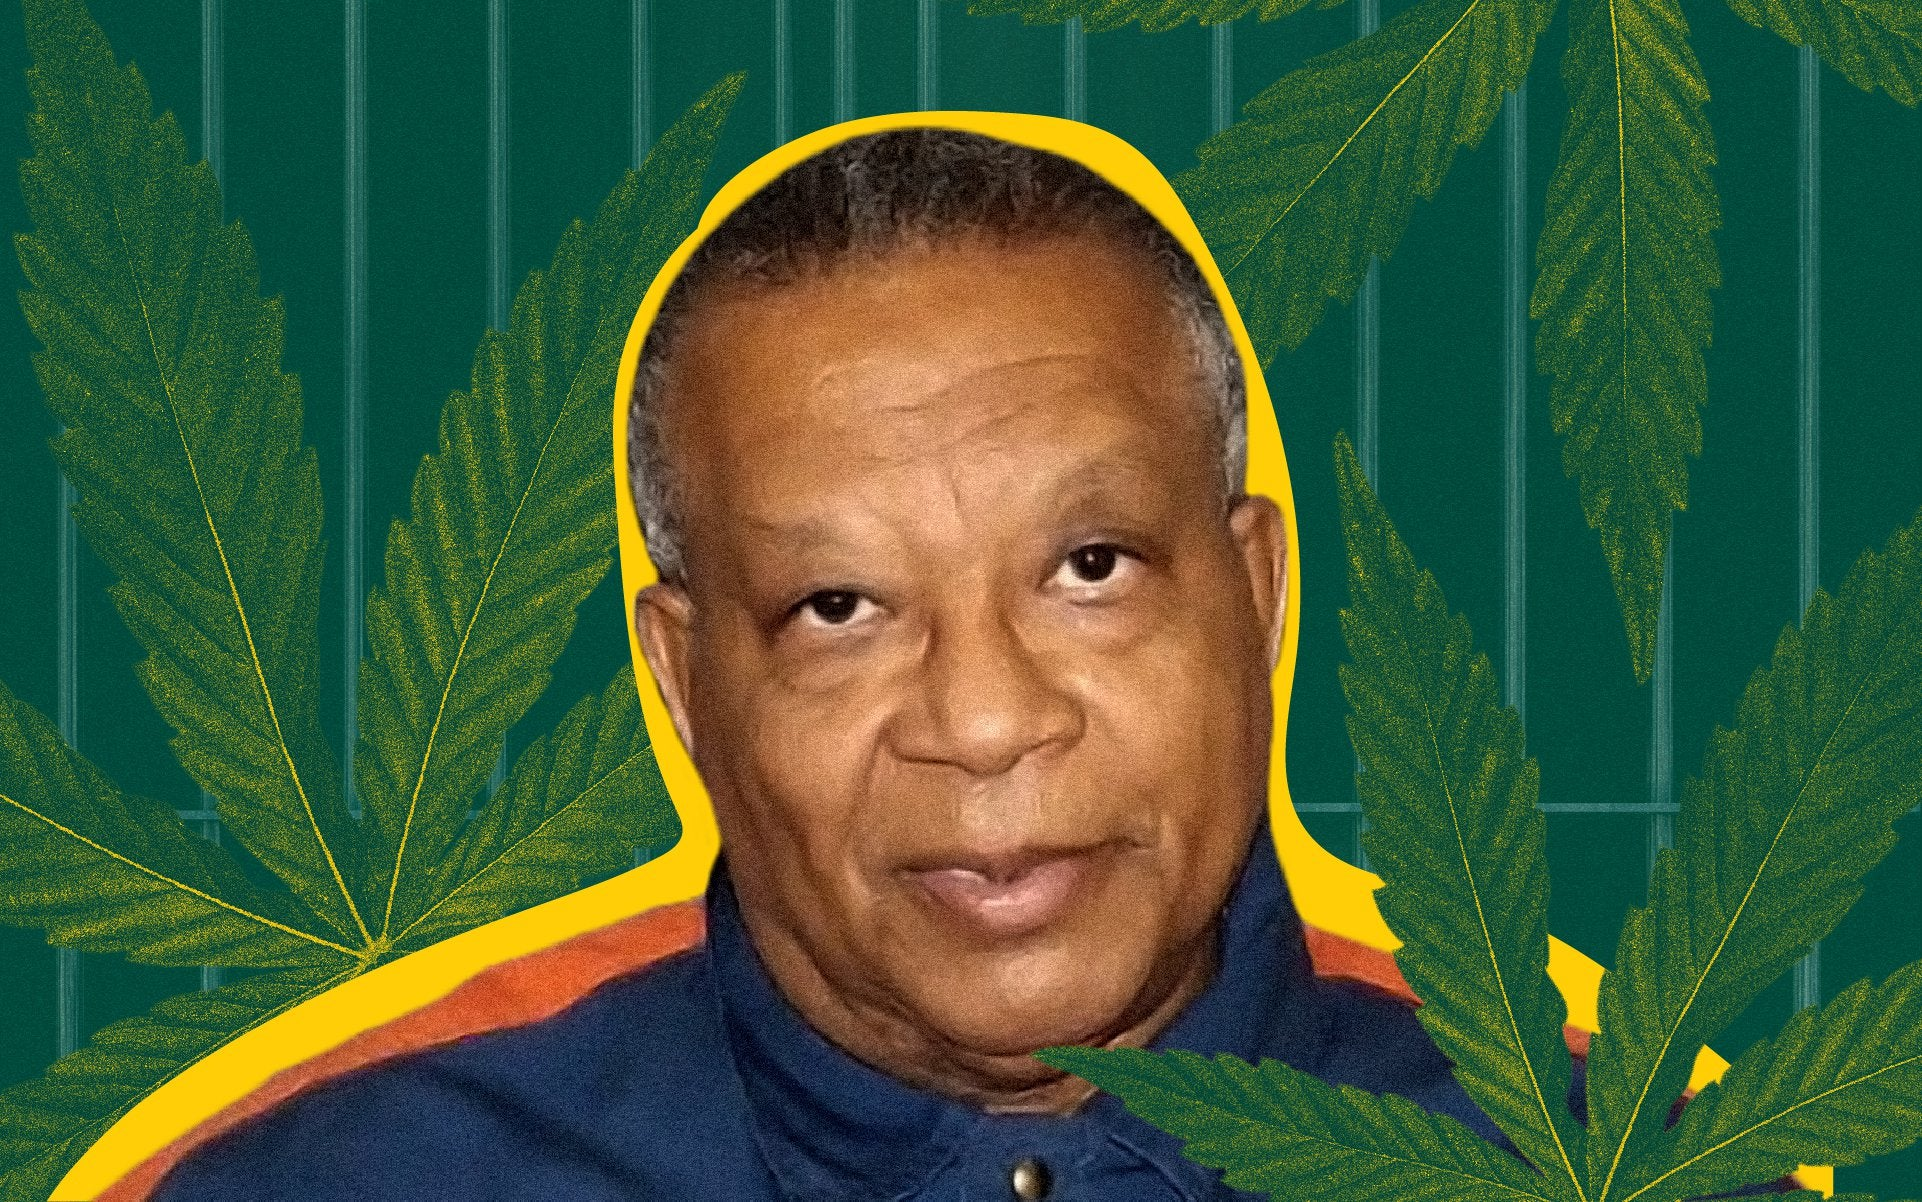 If cannabis is legal, why is Michael Thompson serving 40 years in prison?